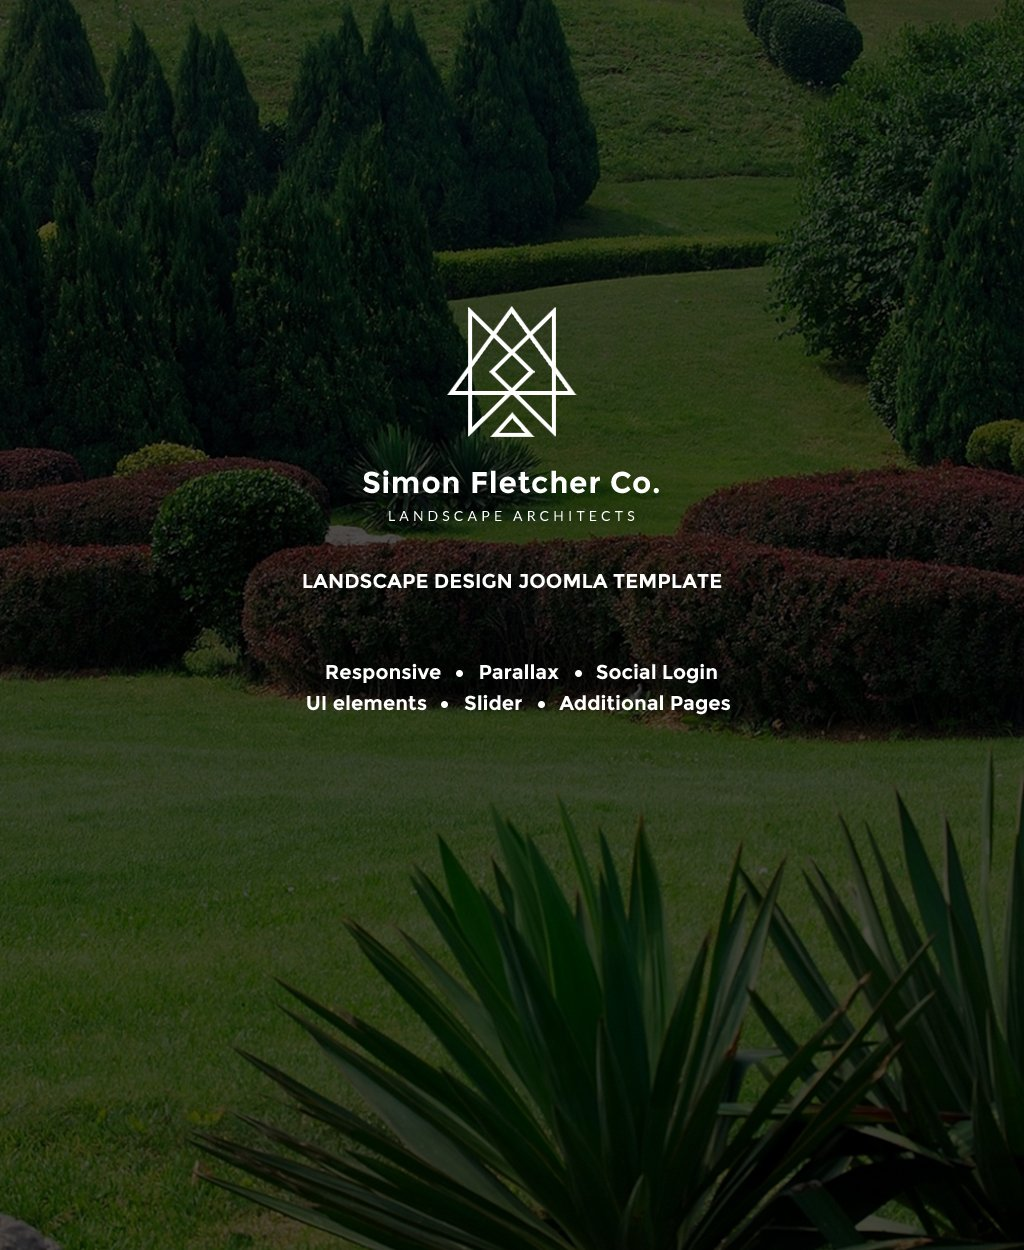 Simon Fletcher - Landscape Architects Joomla Template